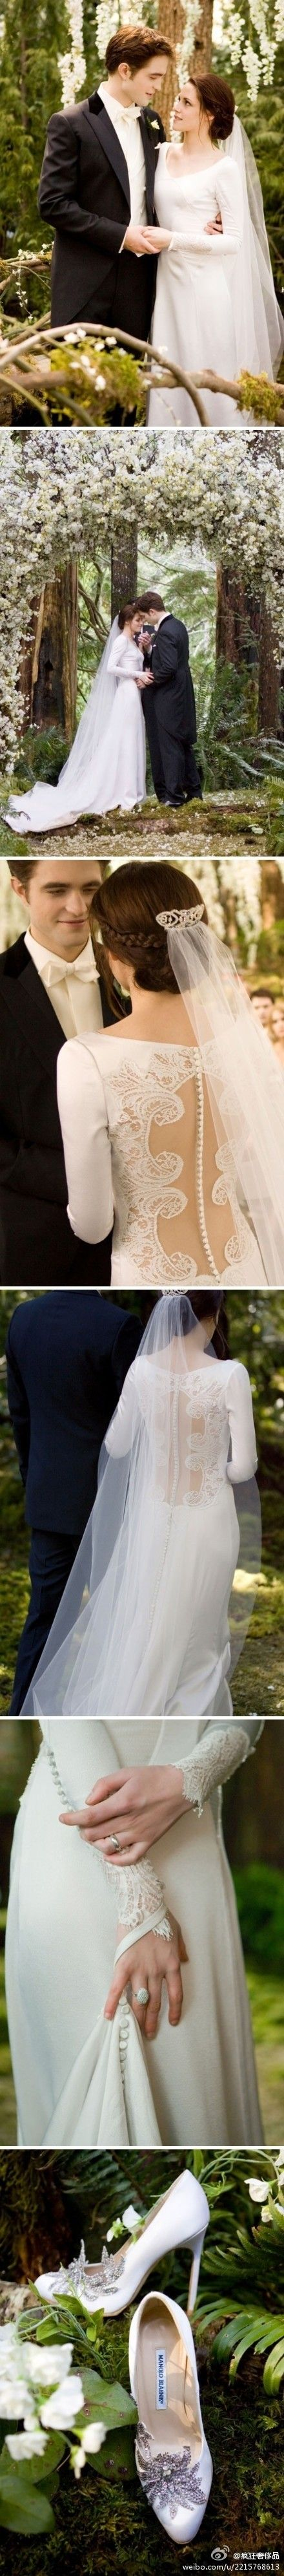 I love twilight but i have many issues with it. 1 of which is, families are guna go into debt because their 'little girl' will have unrealistic expectations and want a wedding just like this...minus the vampires and werewolves (though that sounds dull)